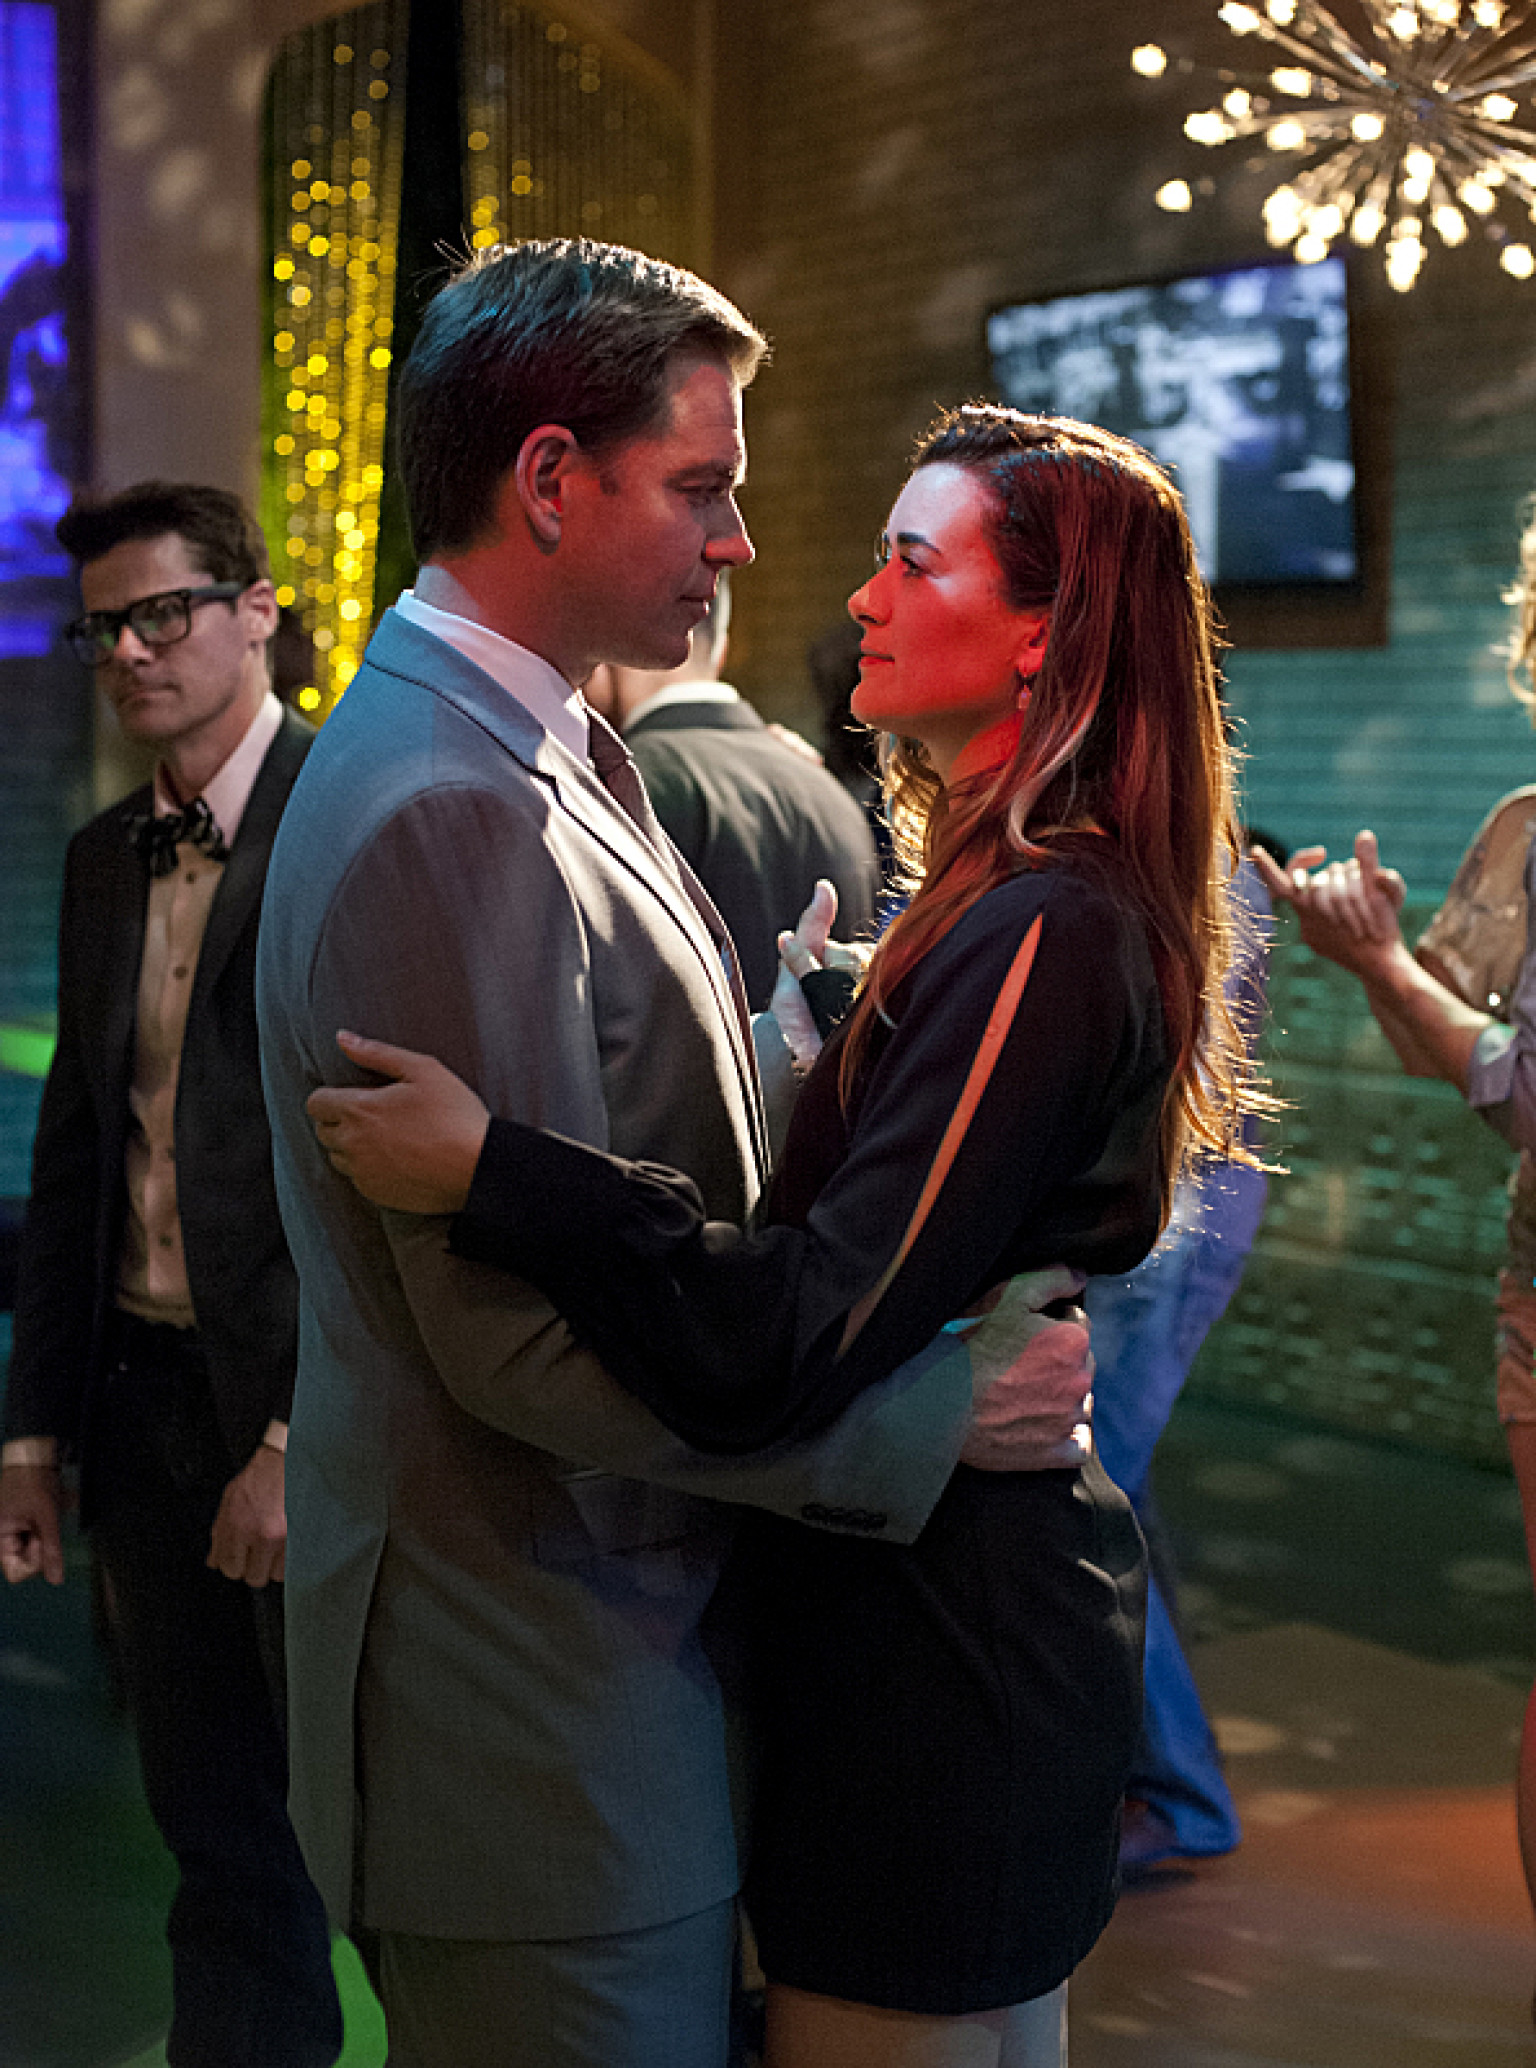 NCIS' Season 11: Michael Weatherly Discusses Ziva Leaving And What